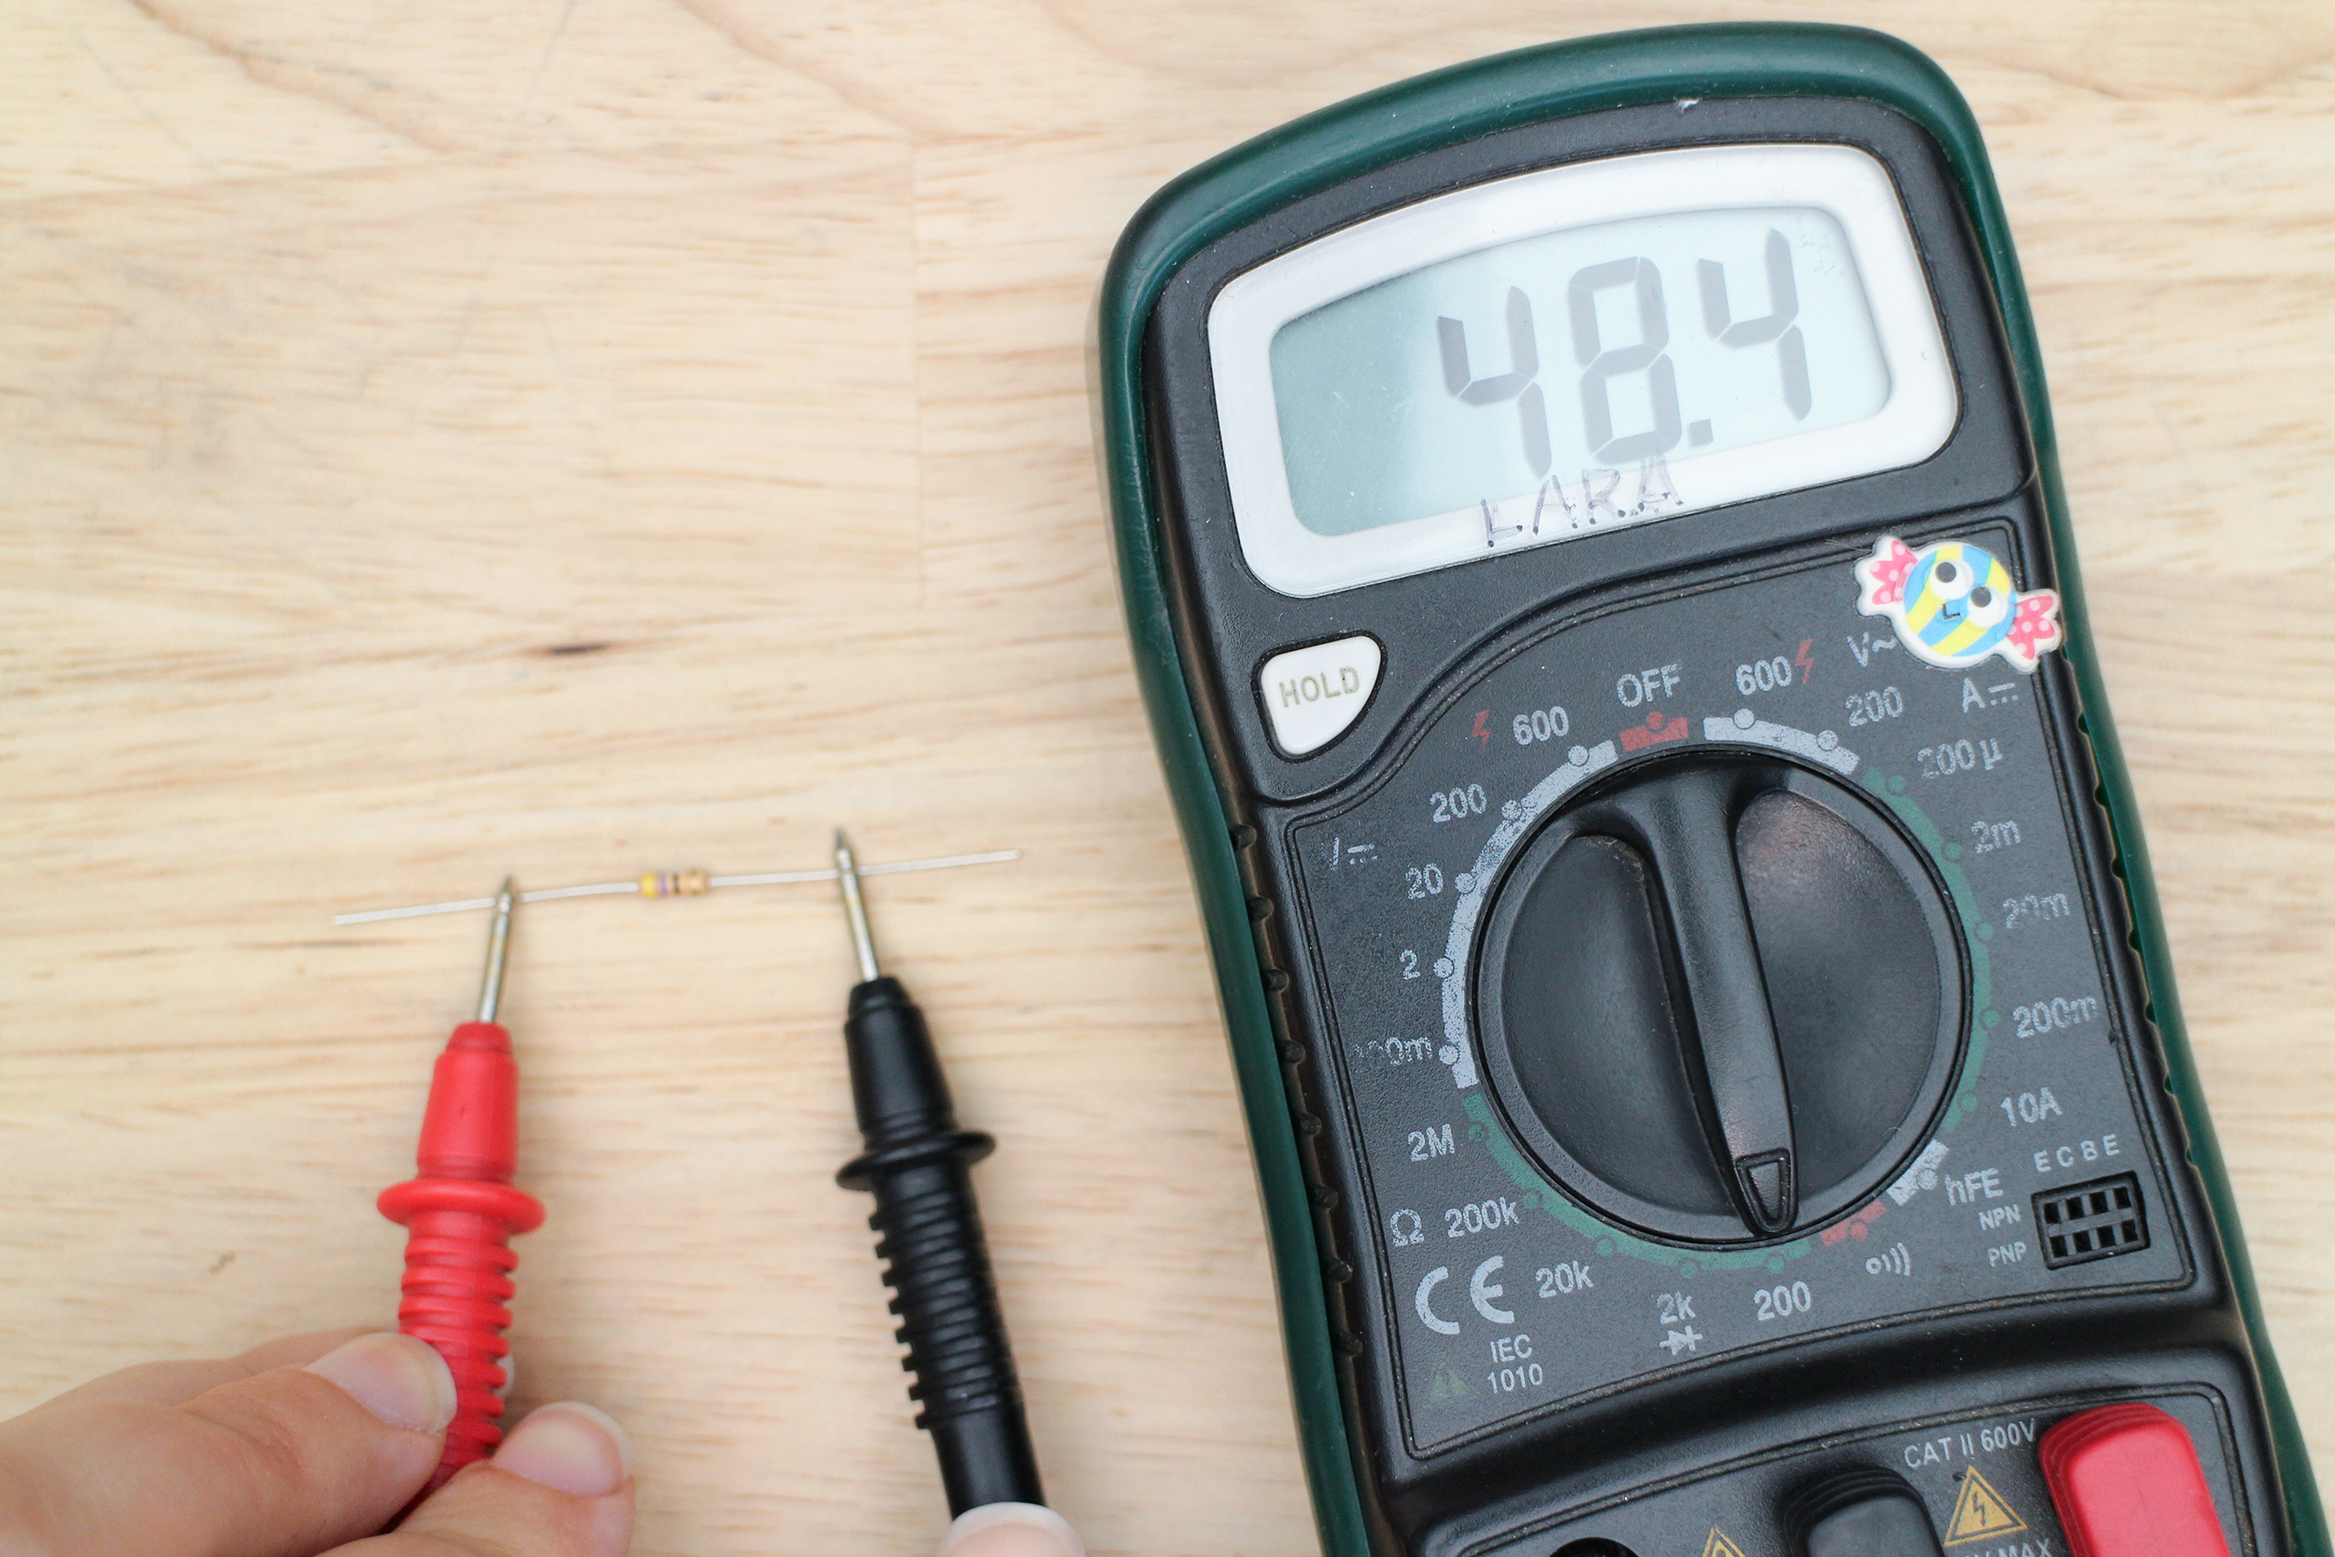 Introduction To Electronics Low Voltage Circuit Tester Besides Ohms Symbol On Multimeter Now You Are Read The Resistance Of Anything That Electricity Can Travel Through Grab Another Resistor And Test Even A Small Part Your